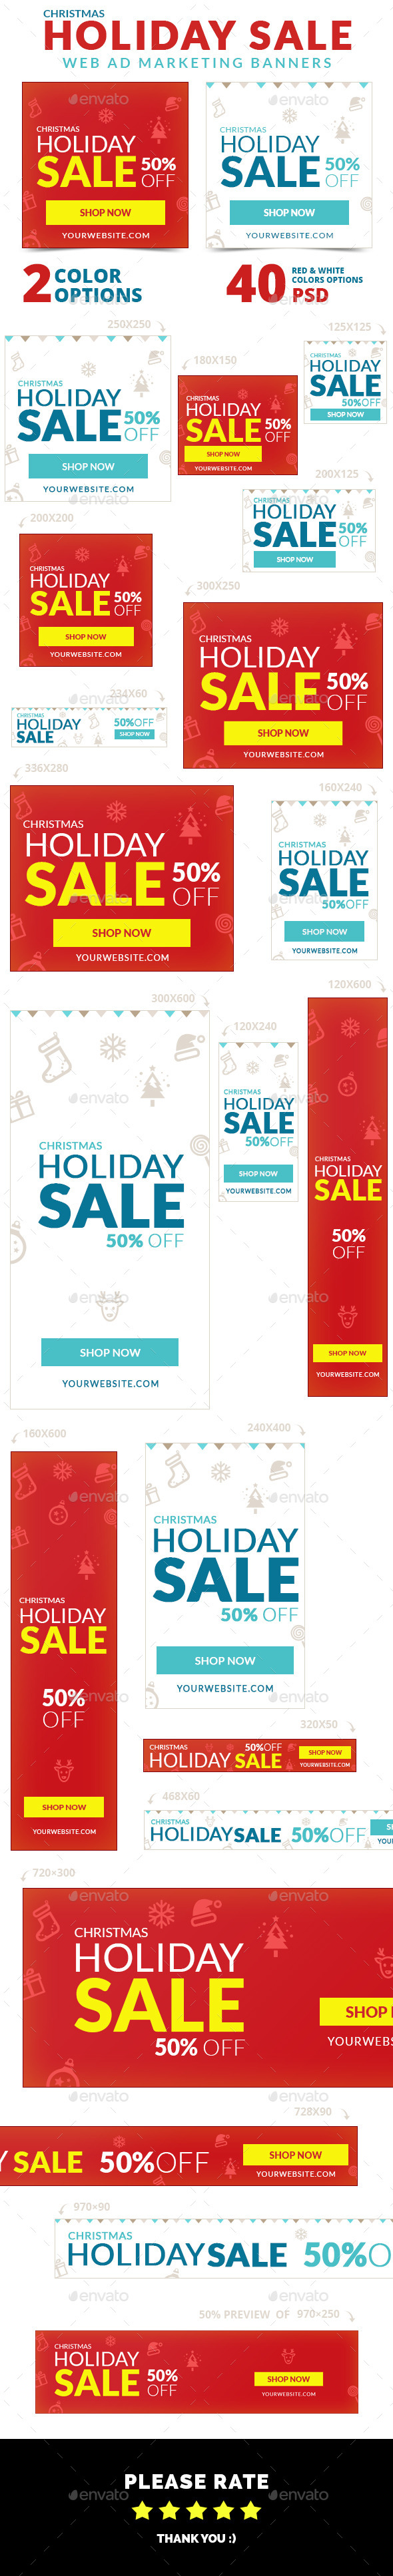 Christmas Holiday Sale Web Ad Marketing Banners - Banners & Ads Web Elements